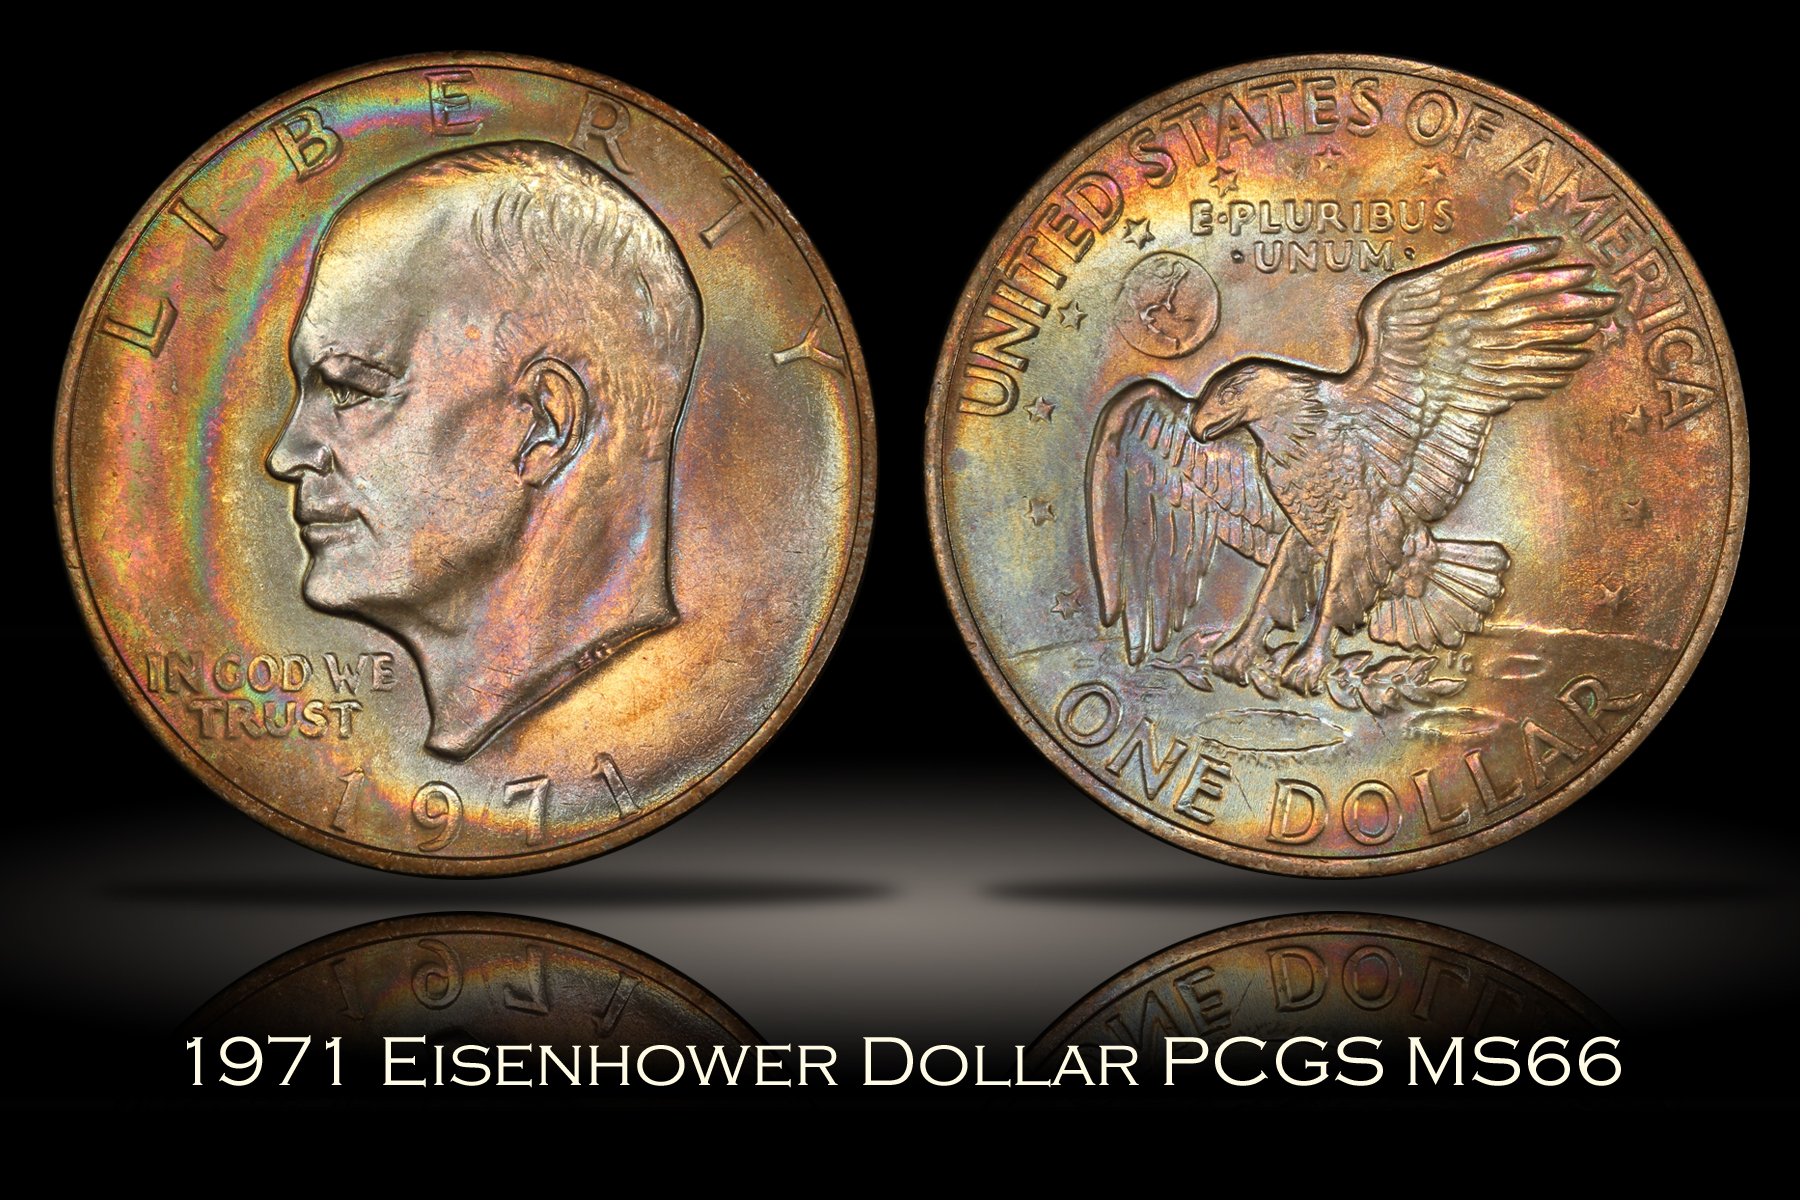 1971 Eisenhower Dollar PCGS MS66